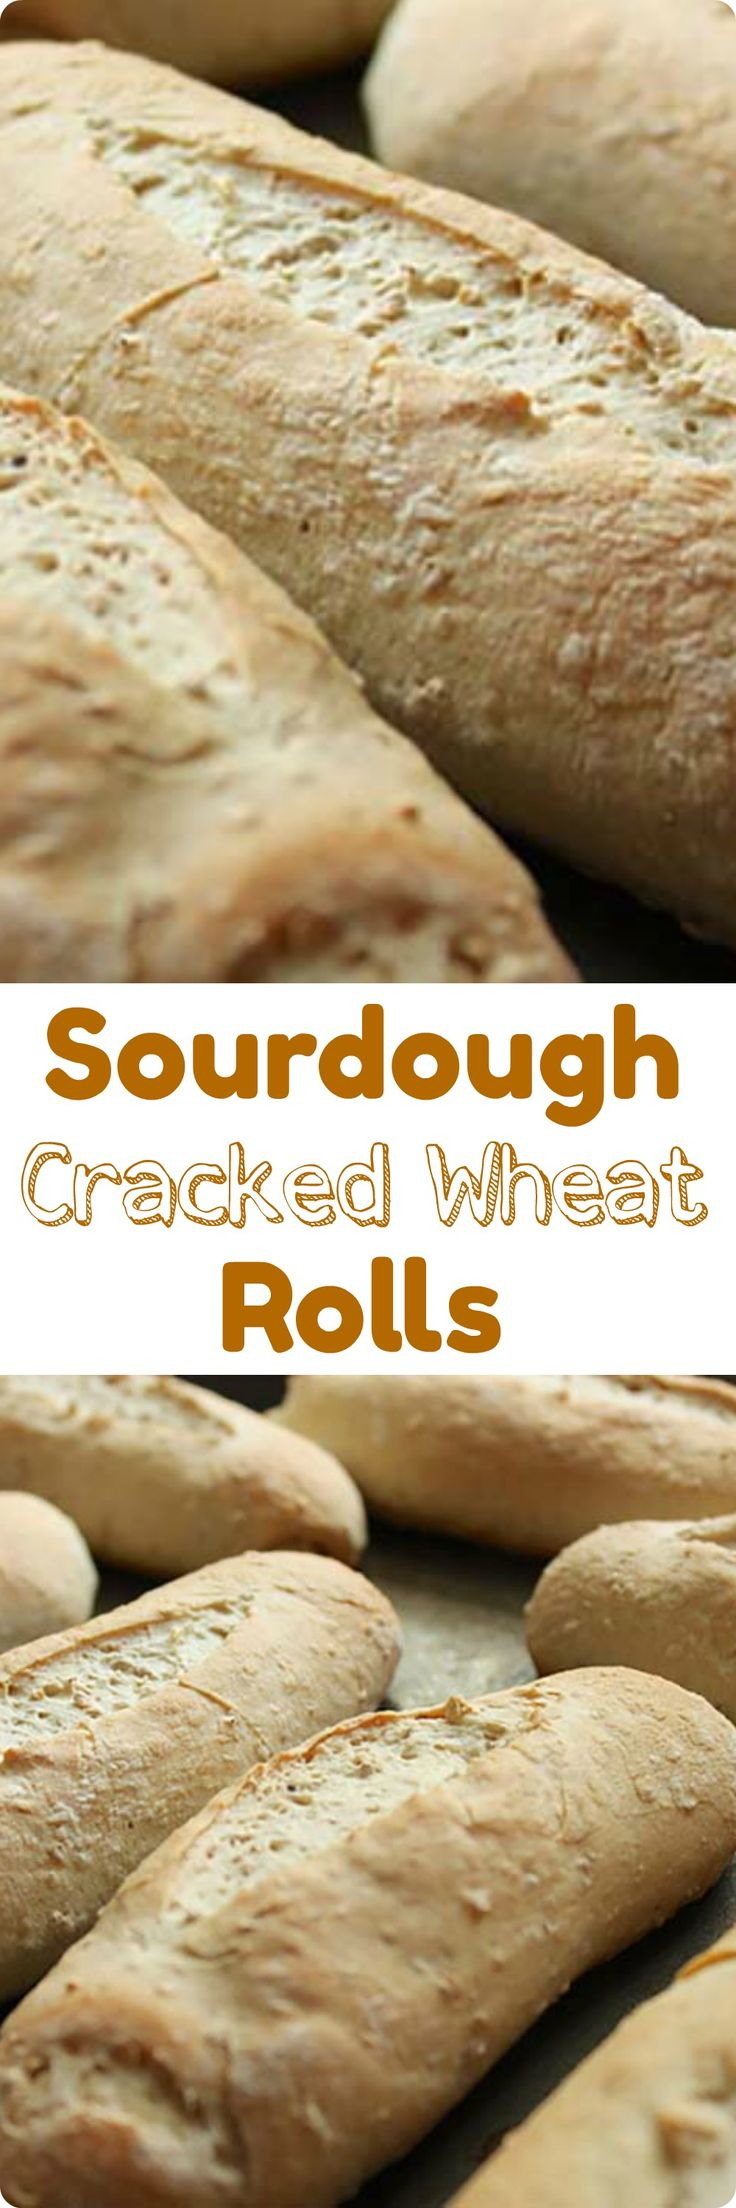 Sourdough Cracked Wheat Rolls | Simple to make, these sourdough rolls have the added flavor and texture of cracked wheat. Find recipe at redstaryeast.com.